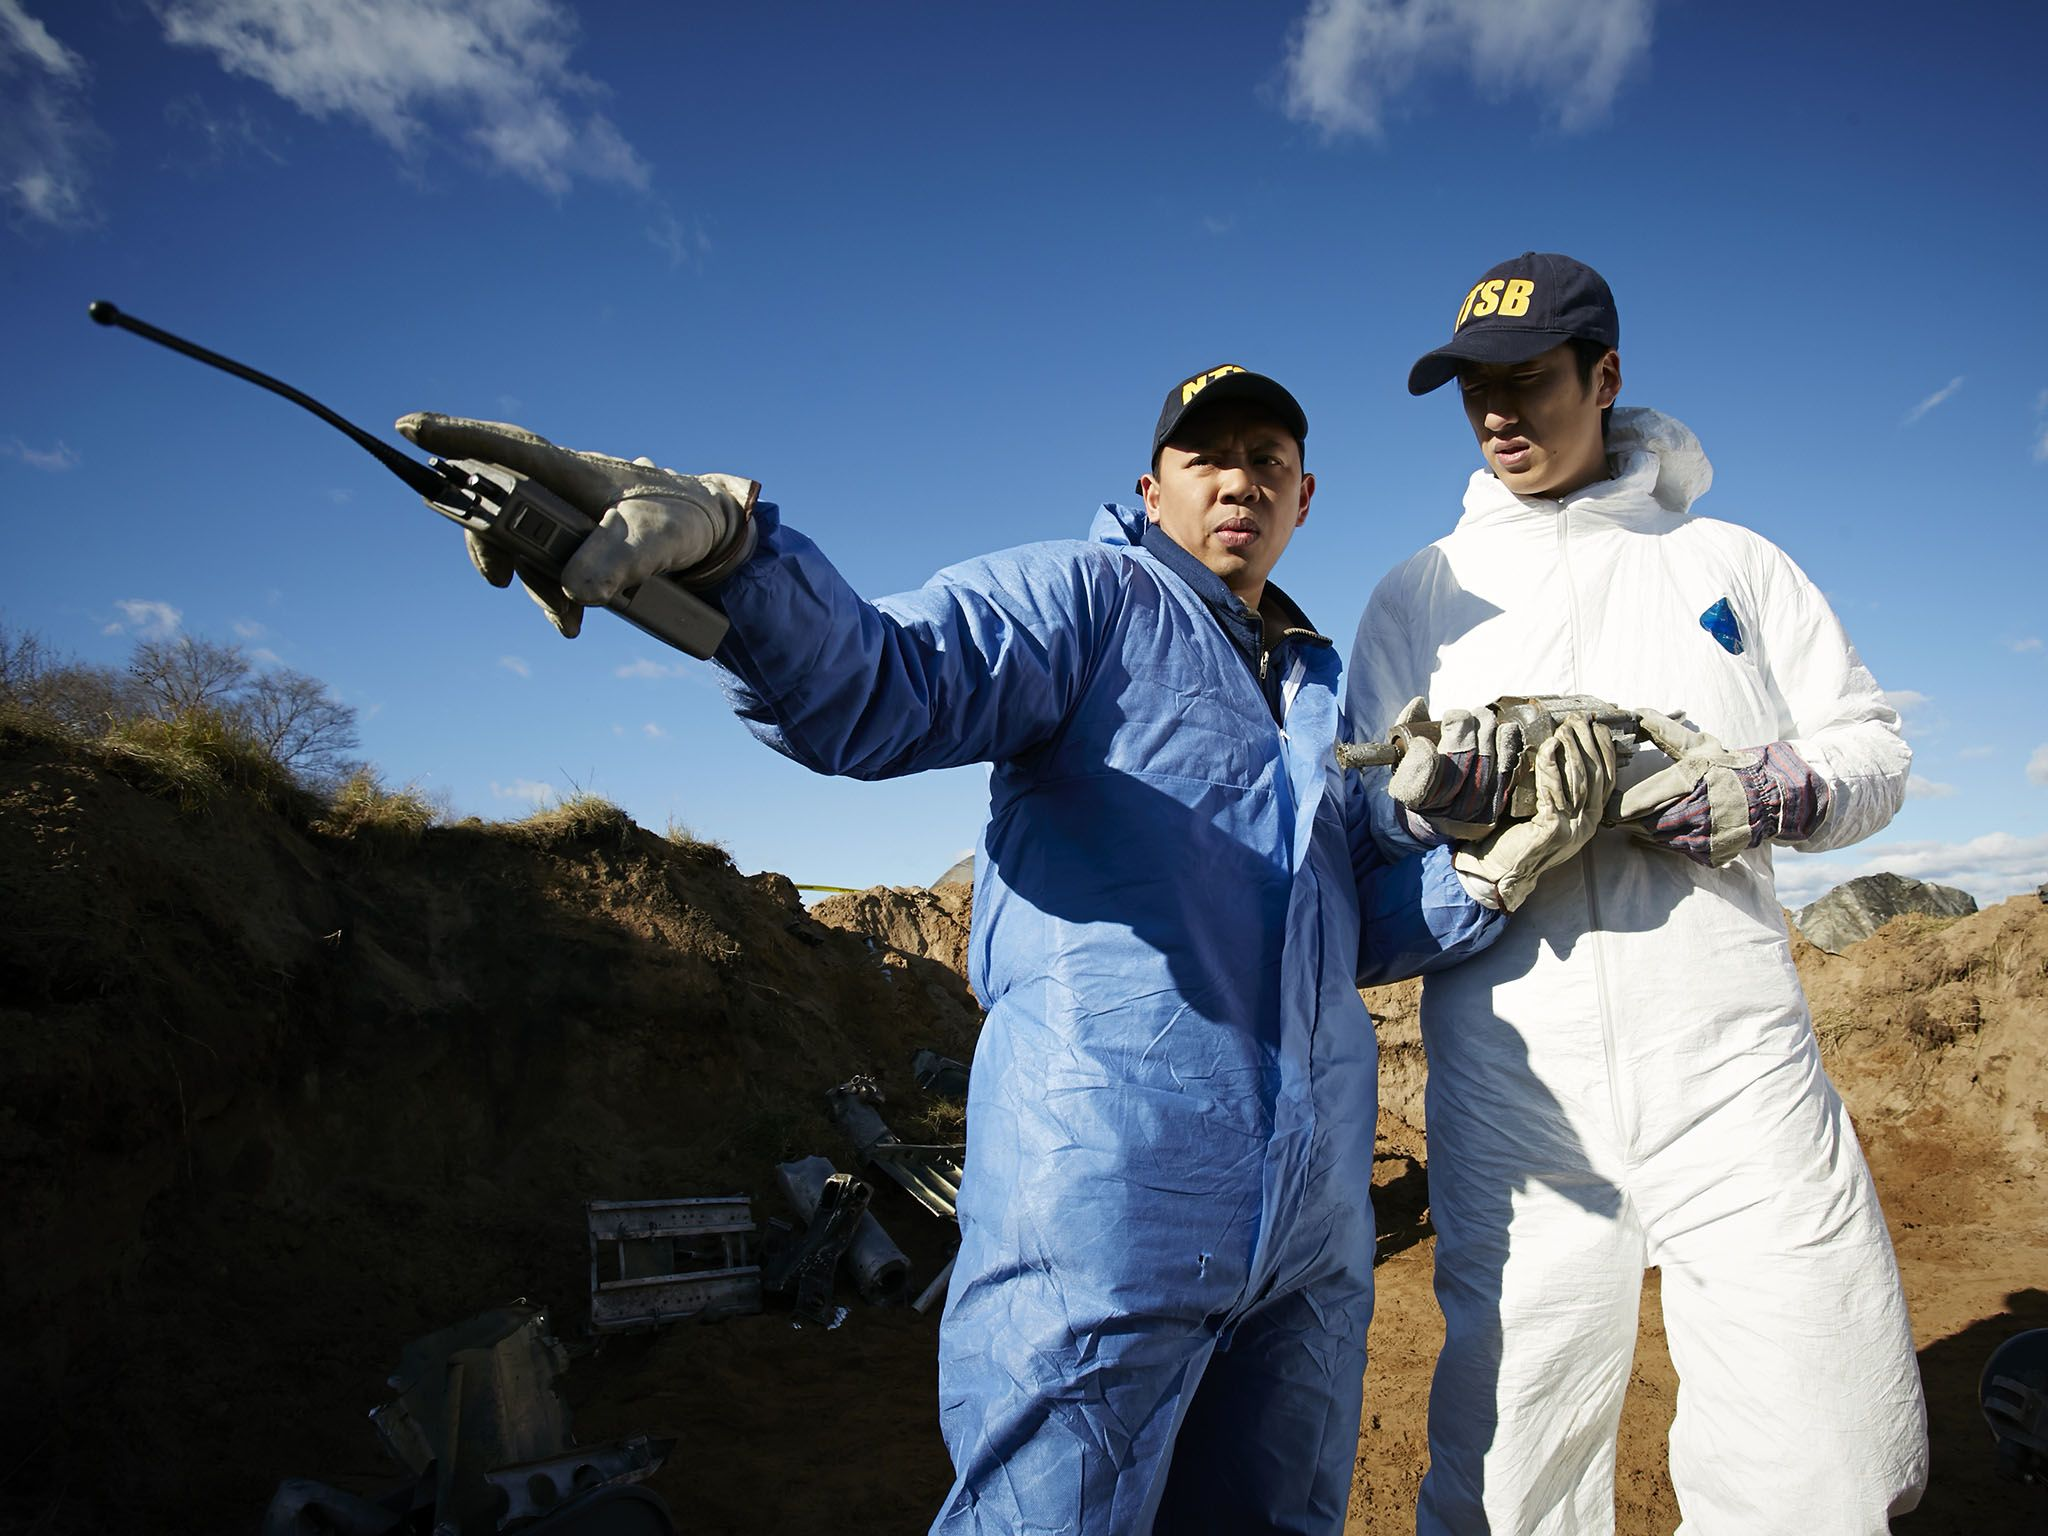 Reenactment: NTSB Investigator (played by Byron Abalos) and another investigator stand in the... [Photo of the day - May 2016]